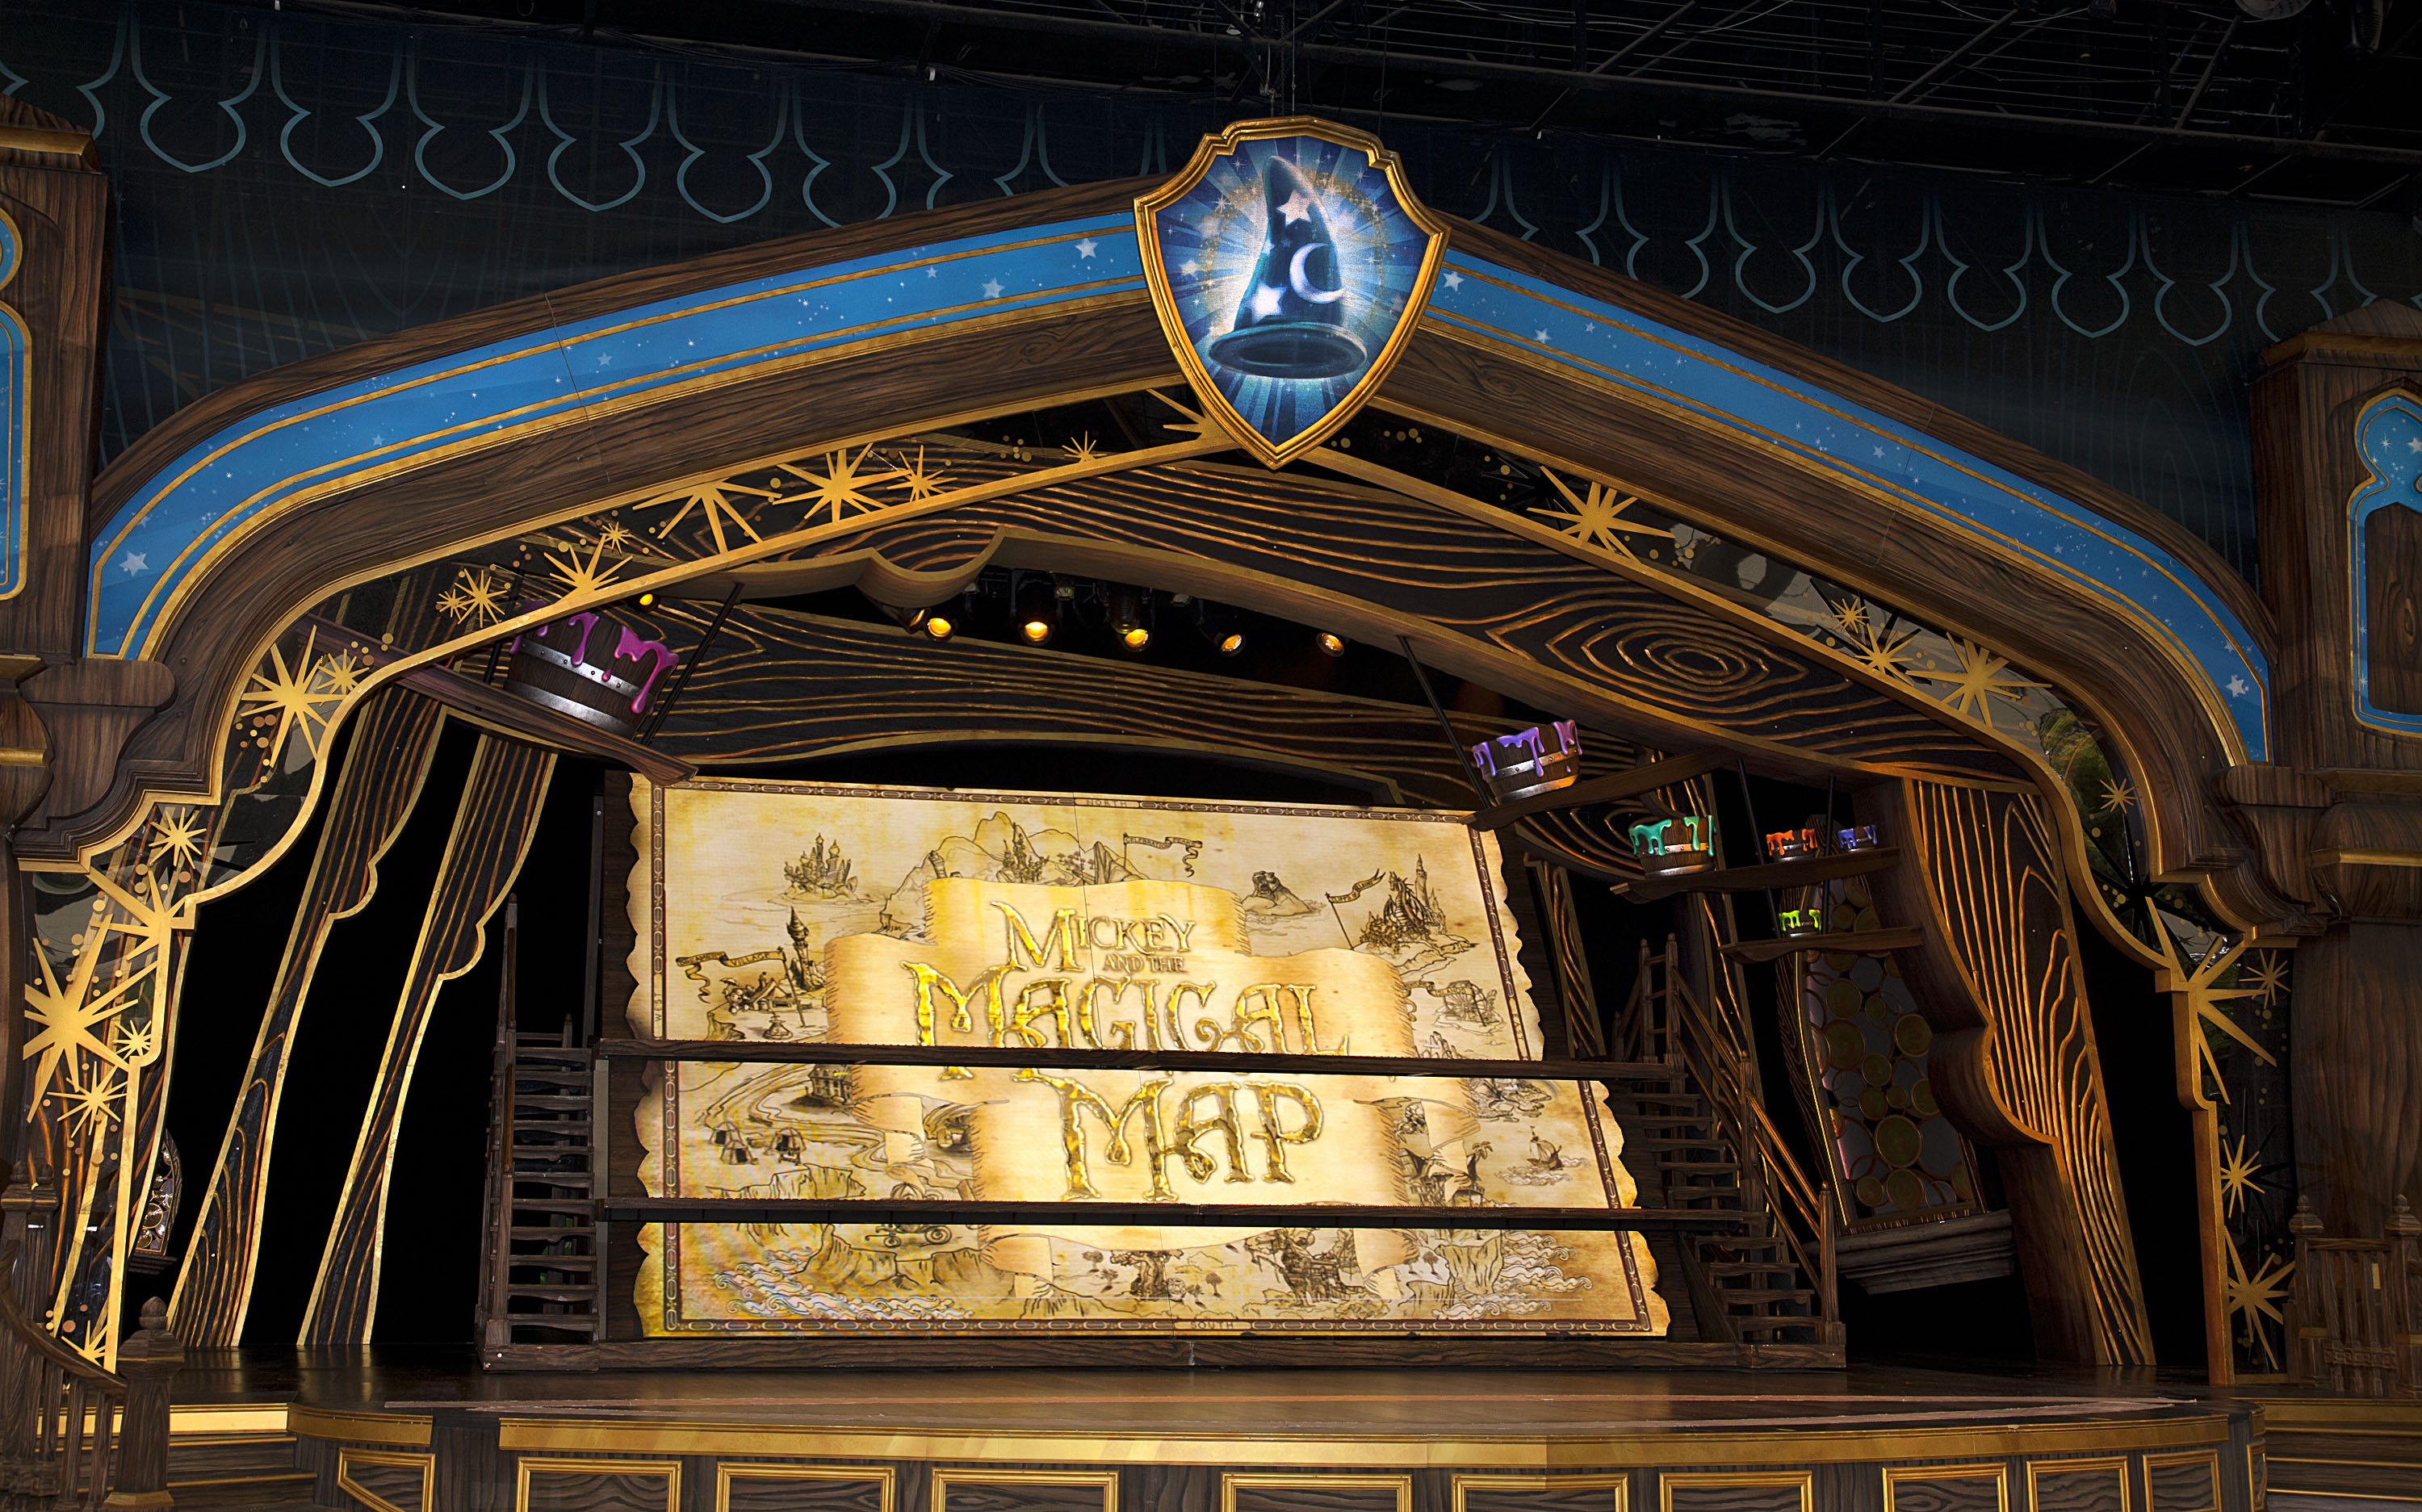 (April 25, 2013)  Mickey and the Magical Map(Paul Hiffmeyer/Disneyland Resort)